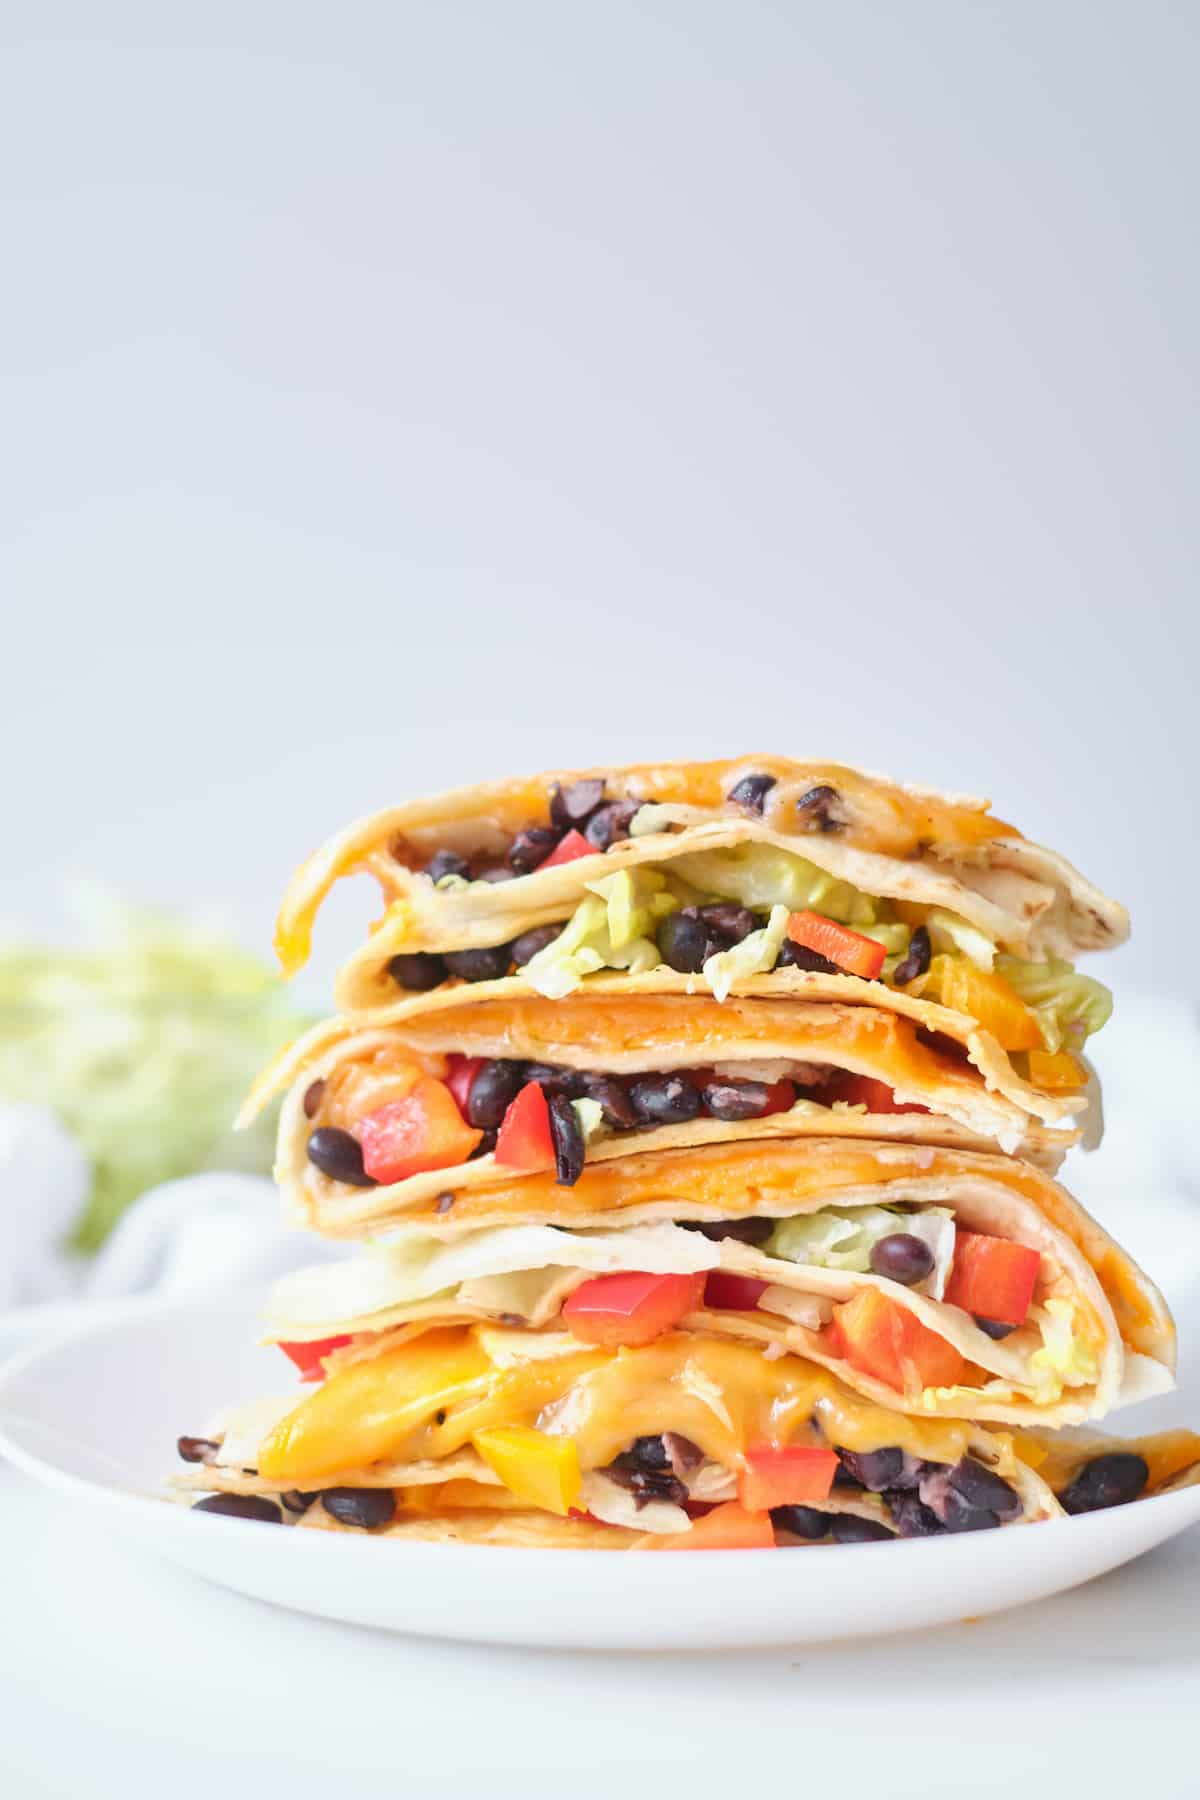 side view of the completed black bean quesadillas stacked and served on a plate